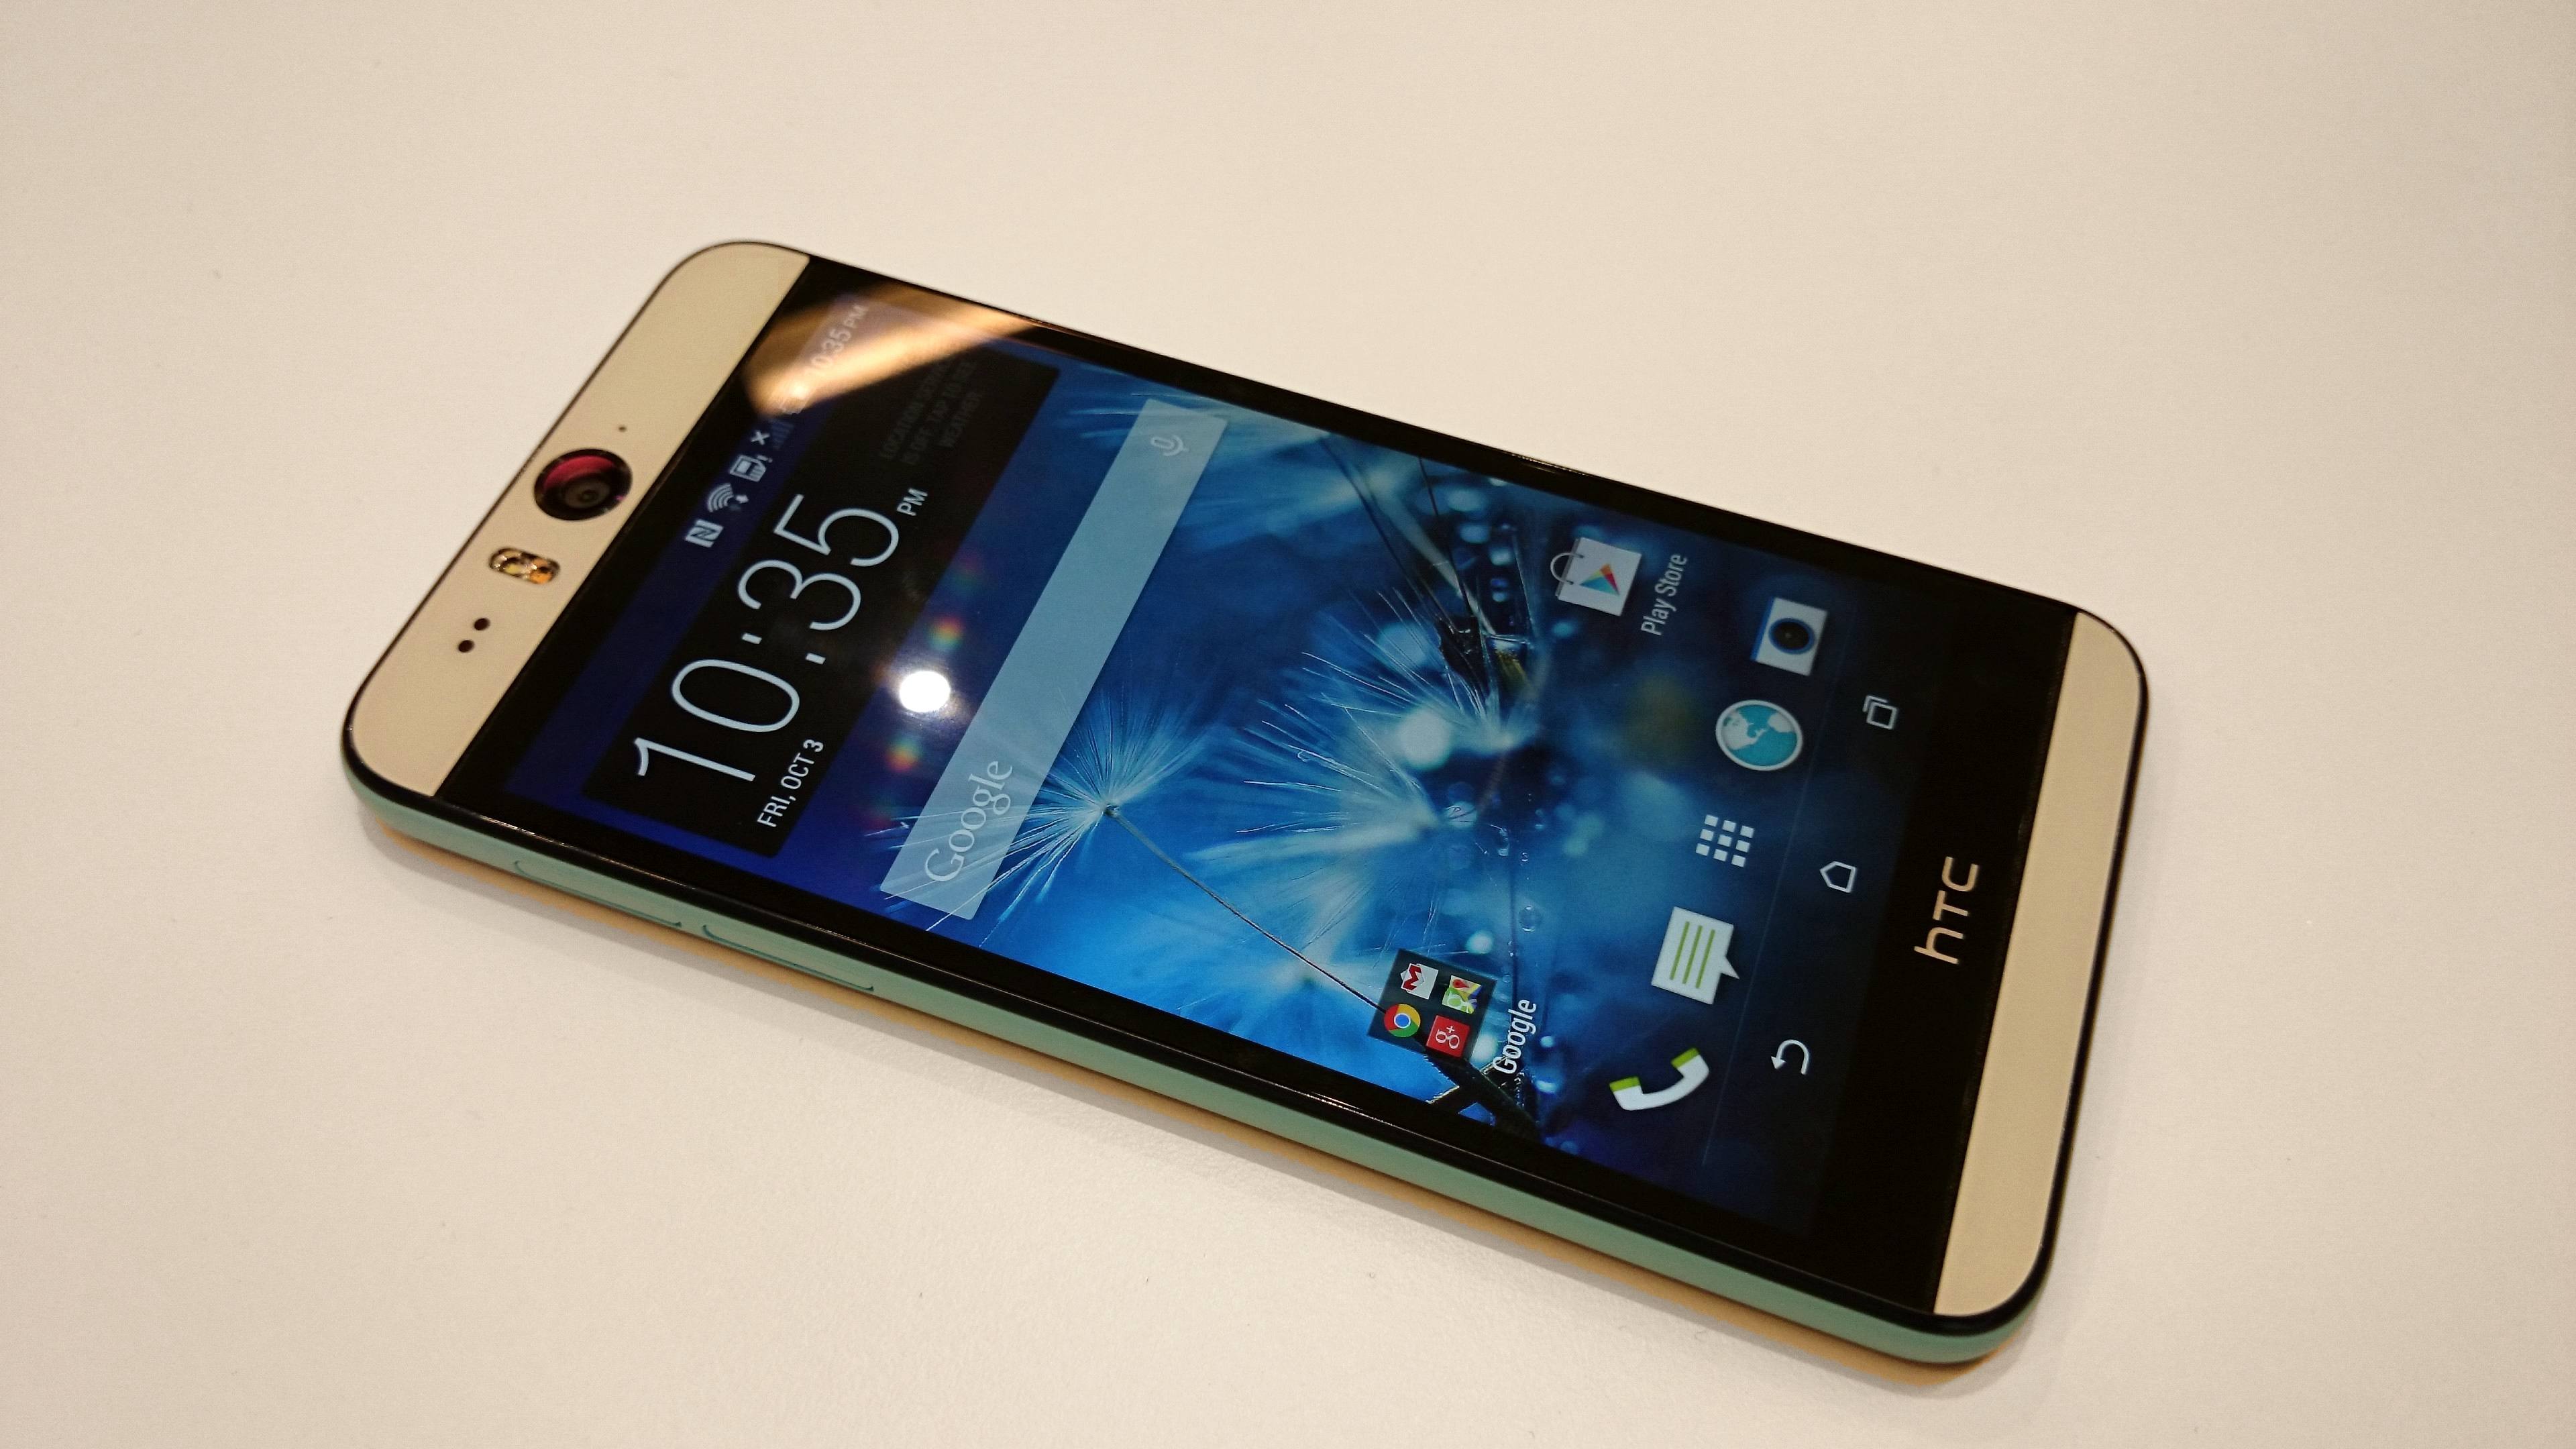 Battery htc desire eye release date uk Chihuahua puppies, when